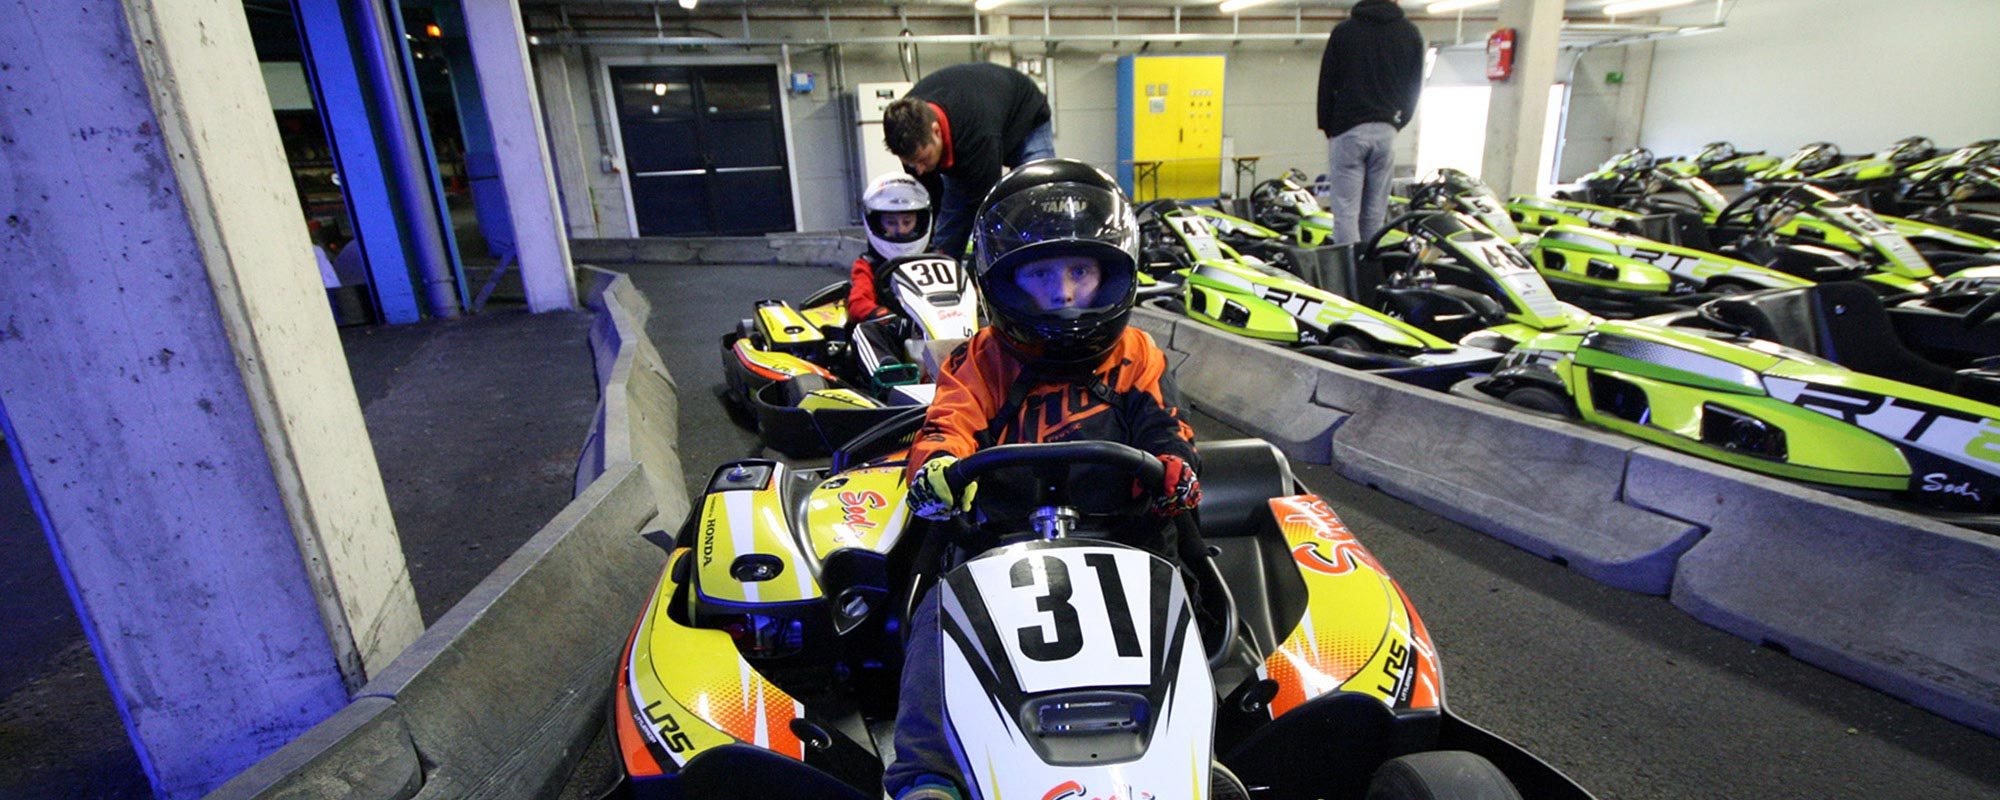 ebafkc-juniorkarting-2000x800-02